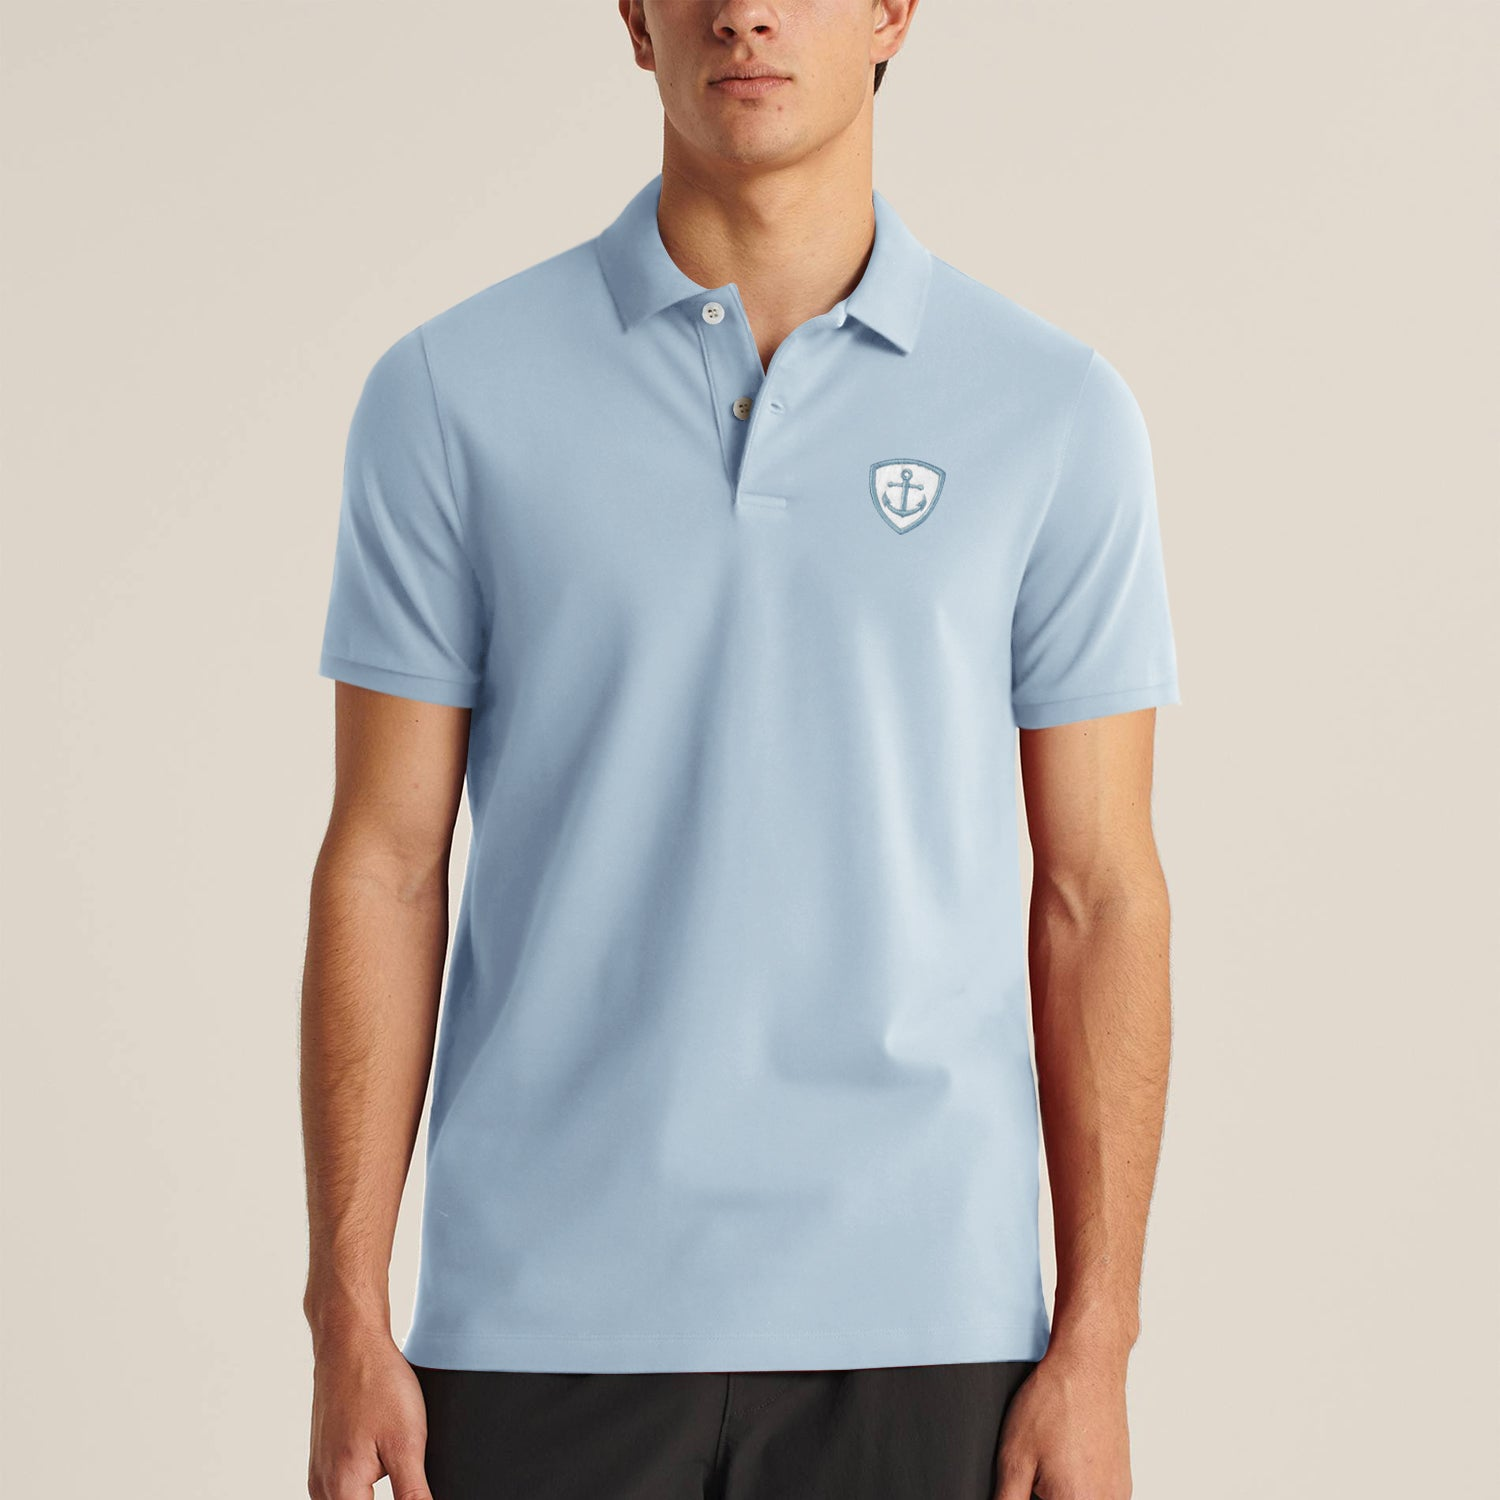 Express Stylish Summer Polo Shirt For Men-Light Blue-BE11456